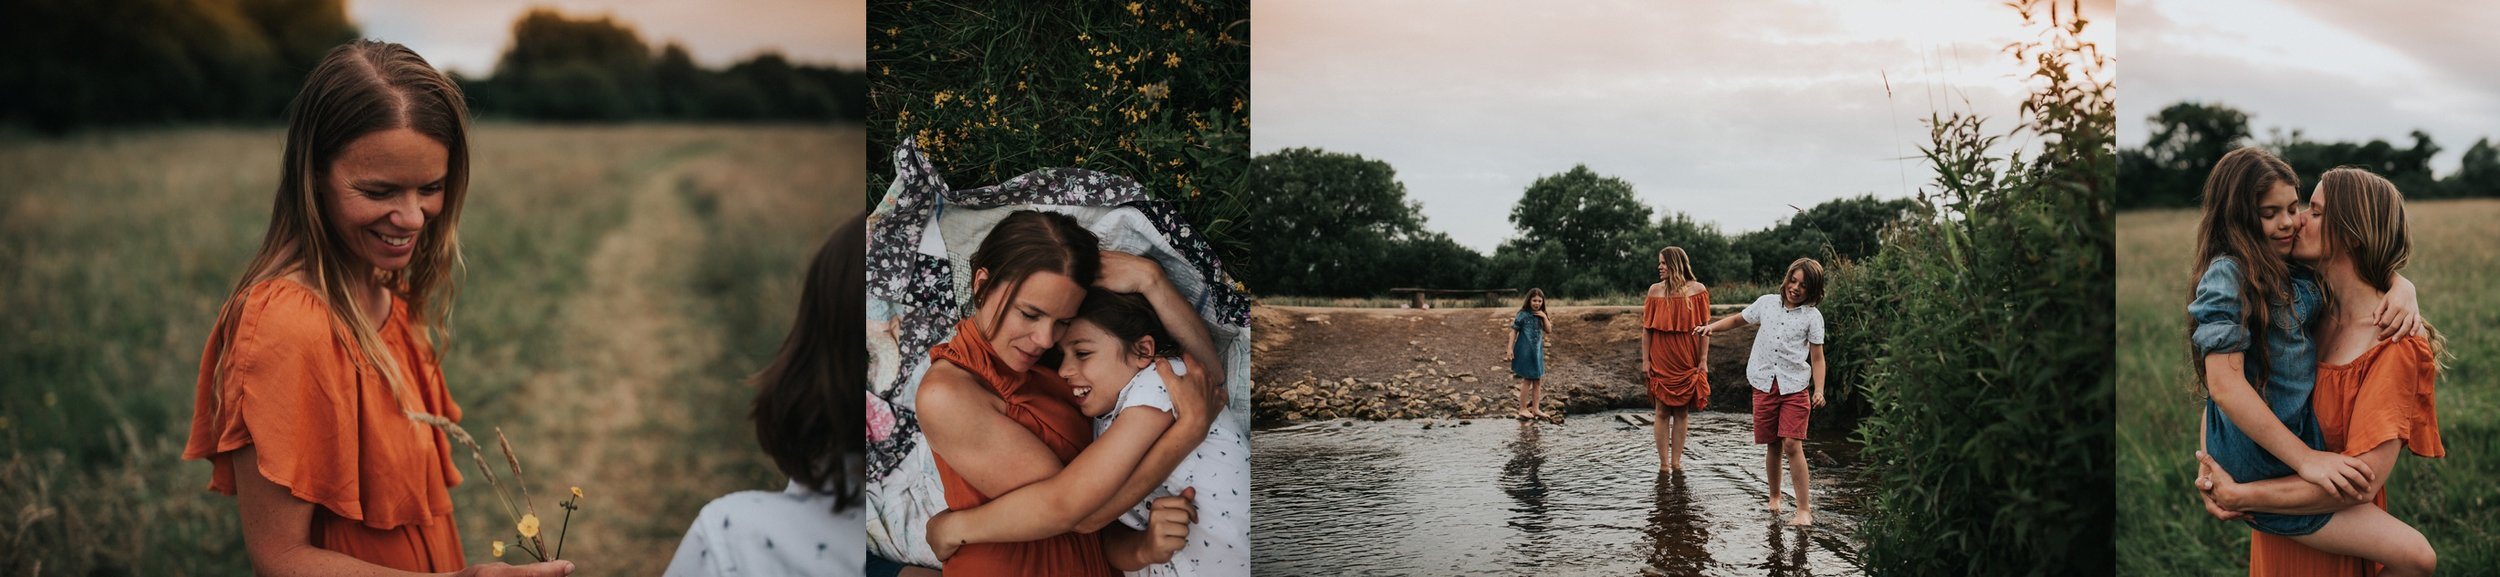 Images by Melanie Grace Photographer